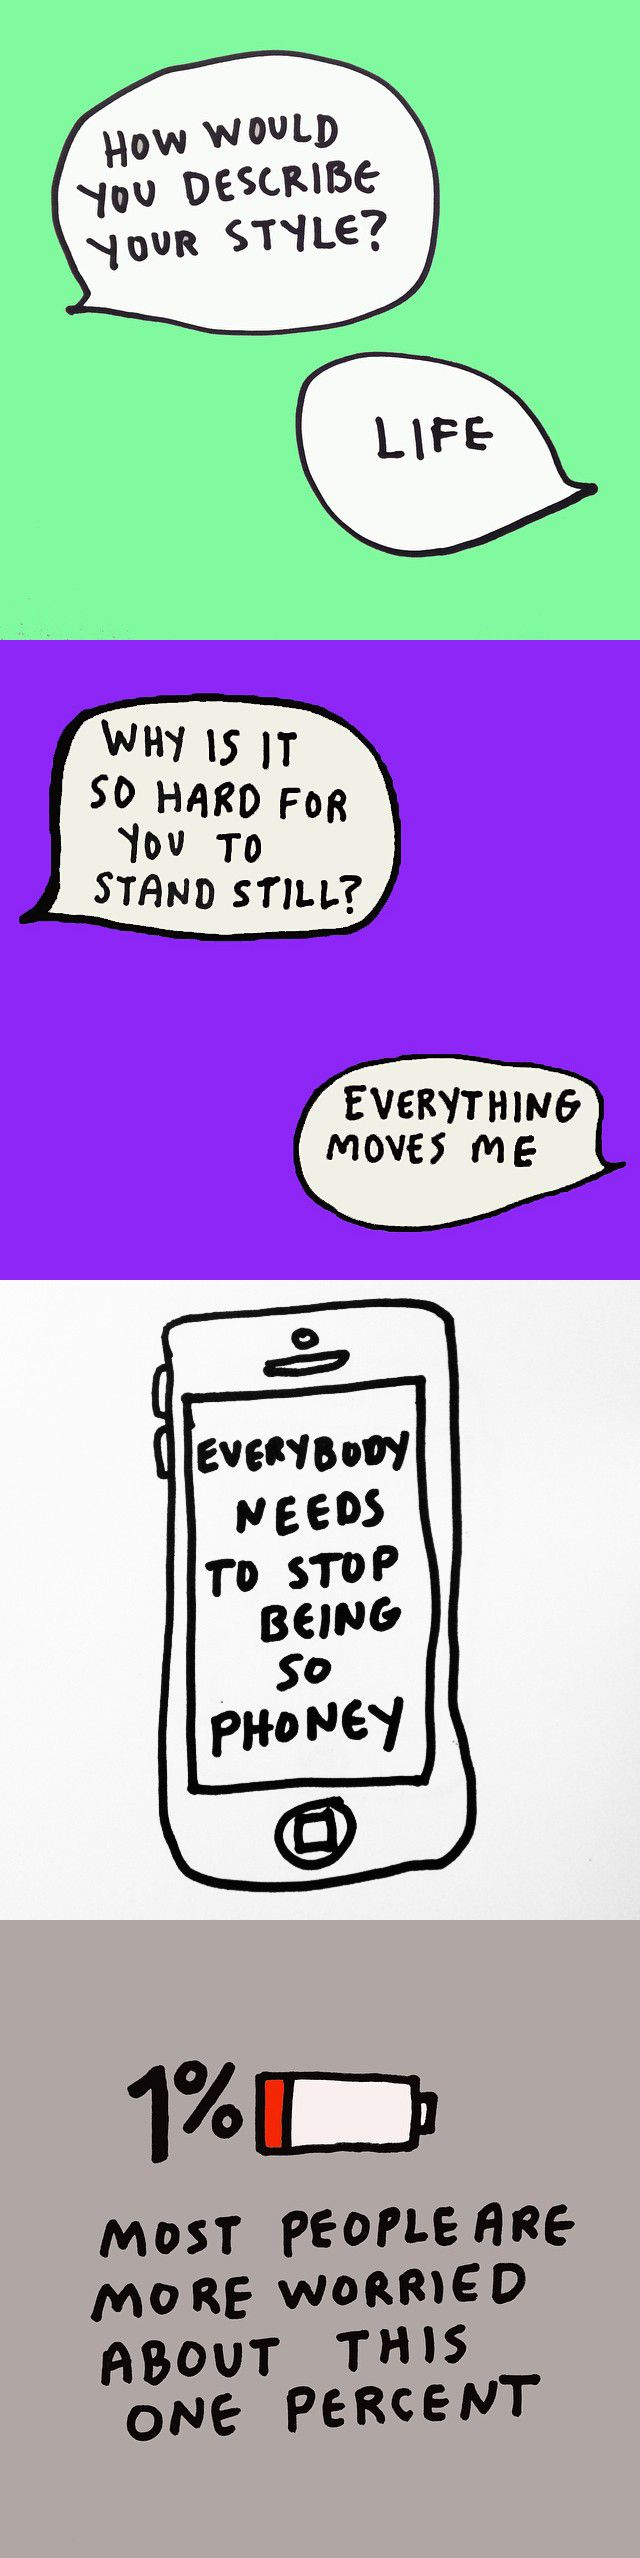 Artist Amber Ibarreche uses her Instagram account to write out puns, witty sayings and sometimes a doodle or two. Her inspirational photos will not only put a smile on anyone's face, but also lend solid life advice for when you're feeling down.